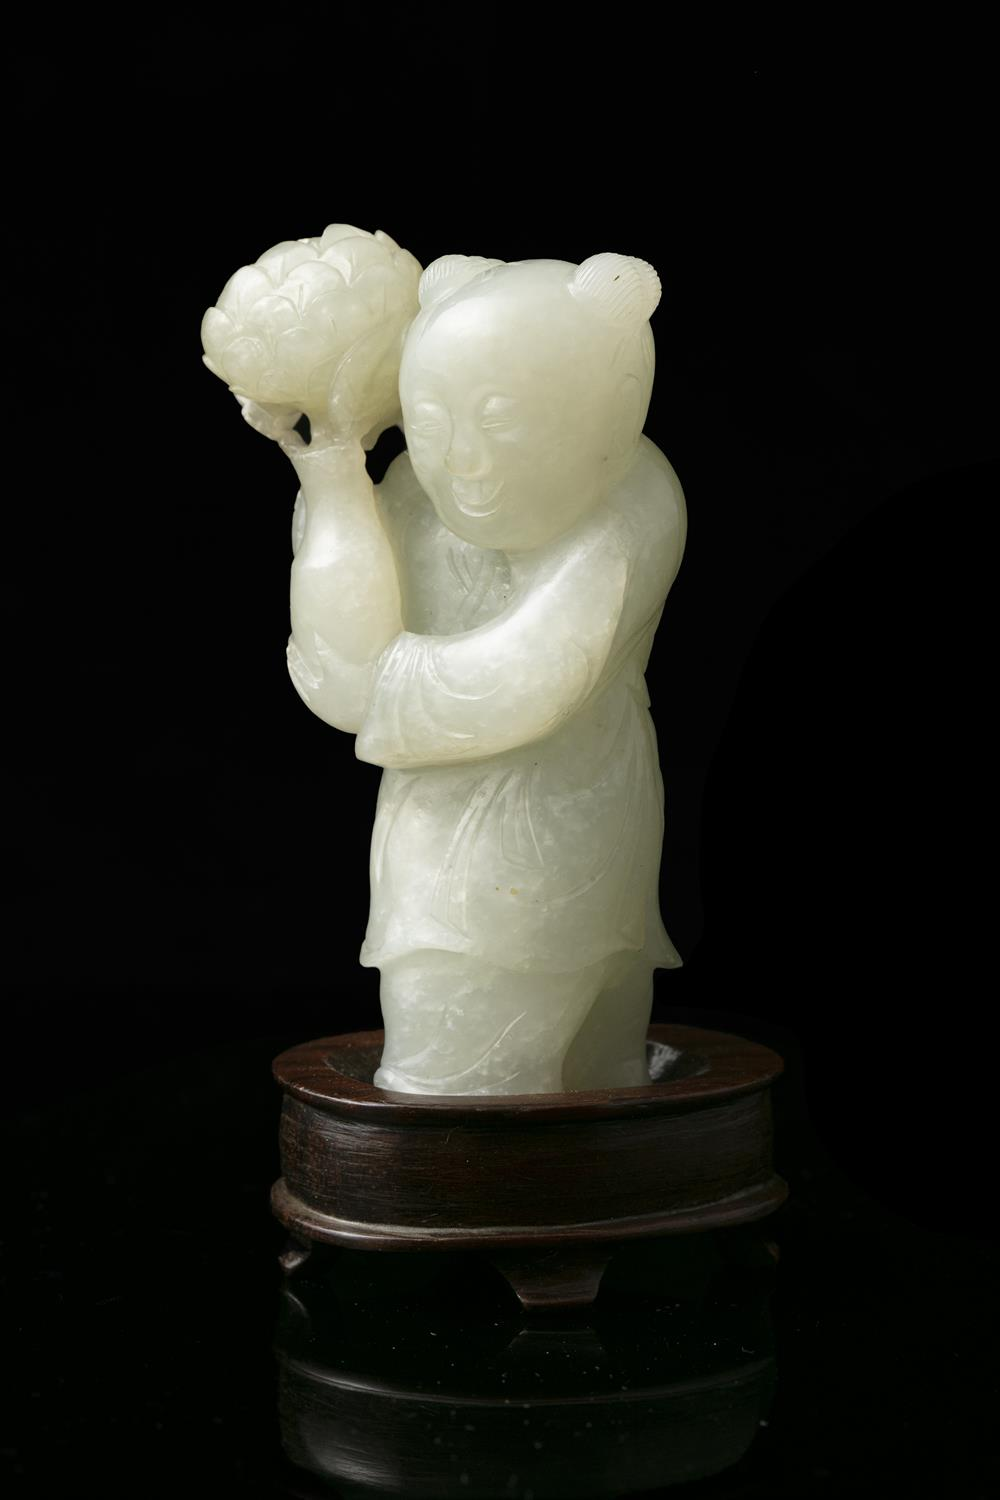 A WHITE JADE FIGURE OF A STANDING BOY WITH A LOTUS FLOWER VASE China, Qing Dynasty, 19th century - Image 11 of 14